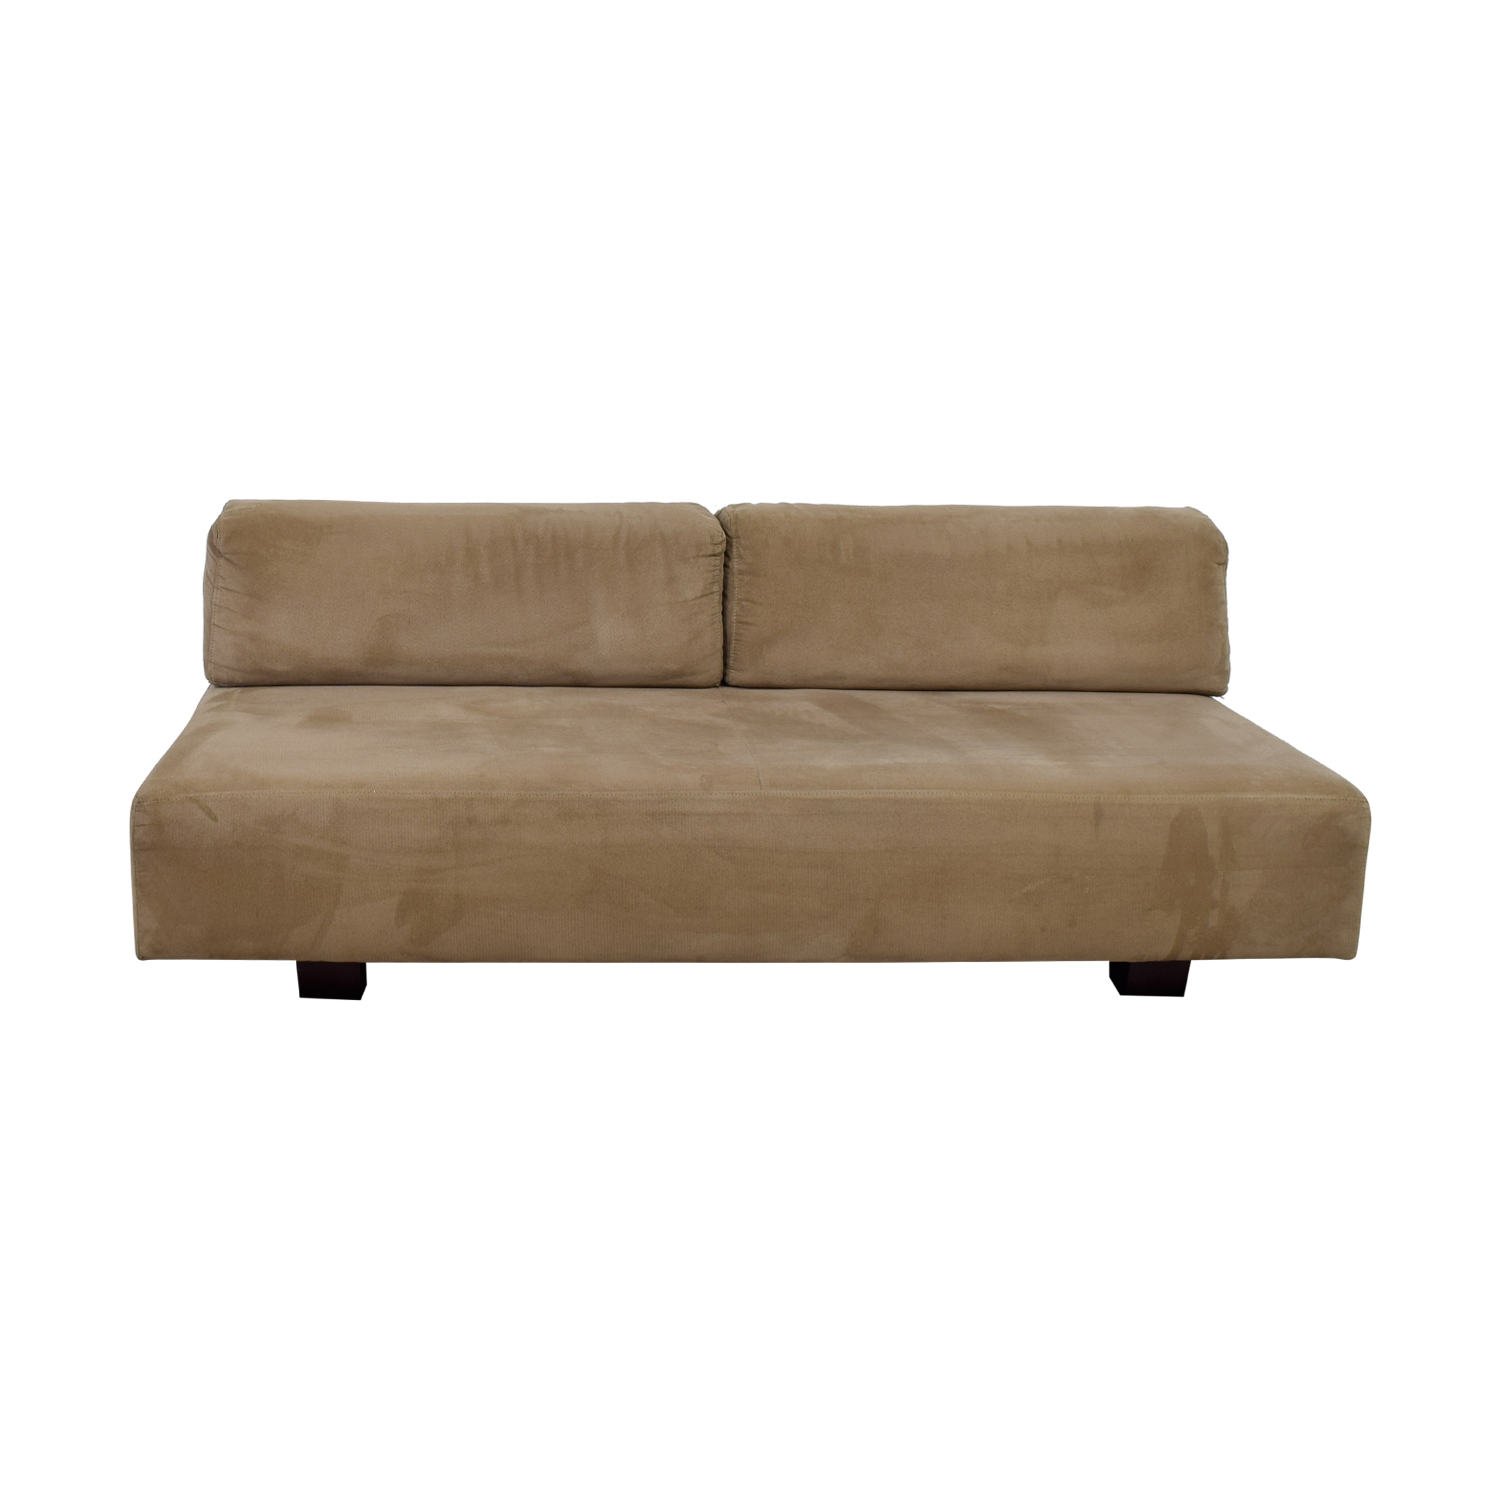 West Elm West Elm Tan Interchangable Sofa nj